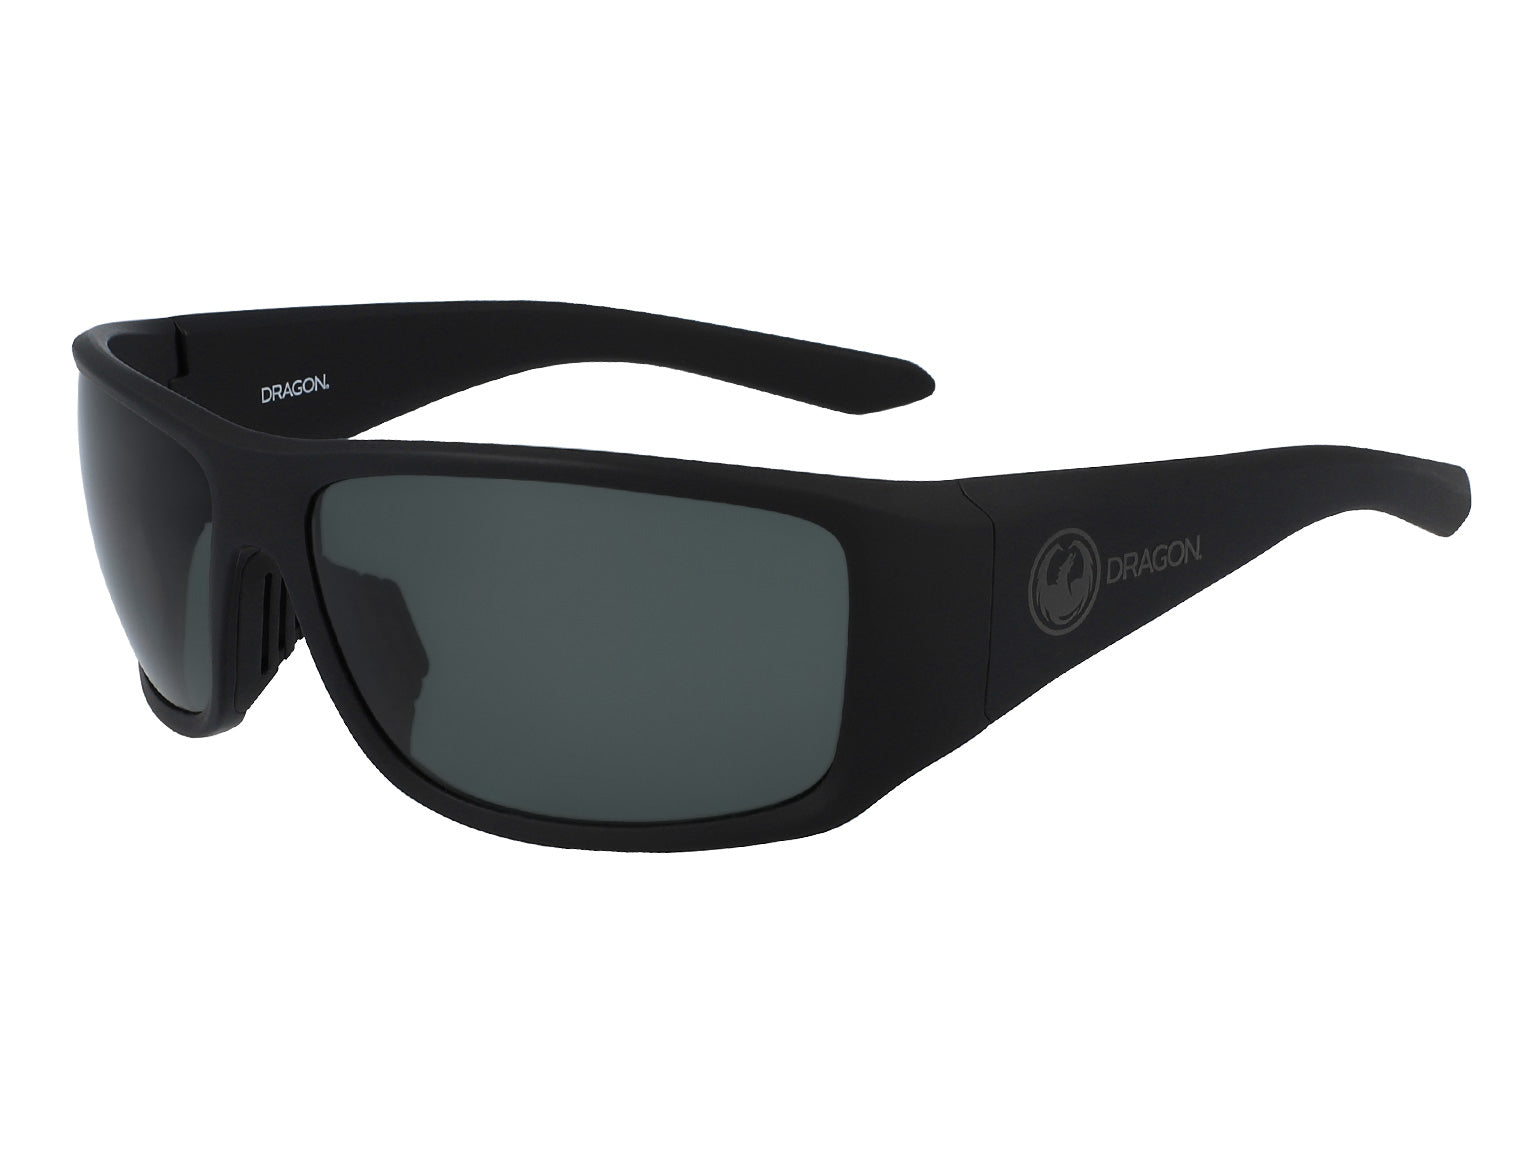 JUMP - Matte Black ; with Polarized Lumalens Smoke Lens